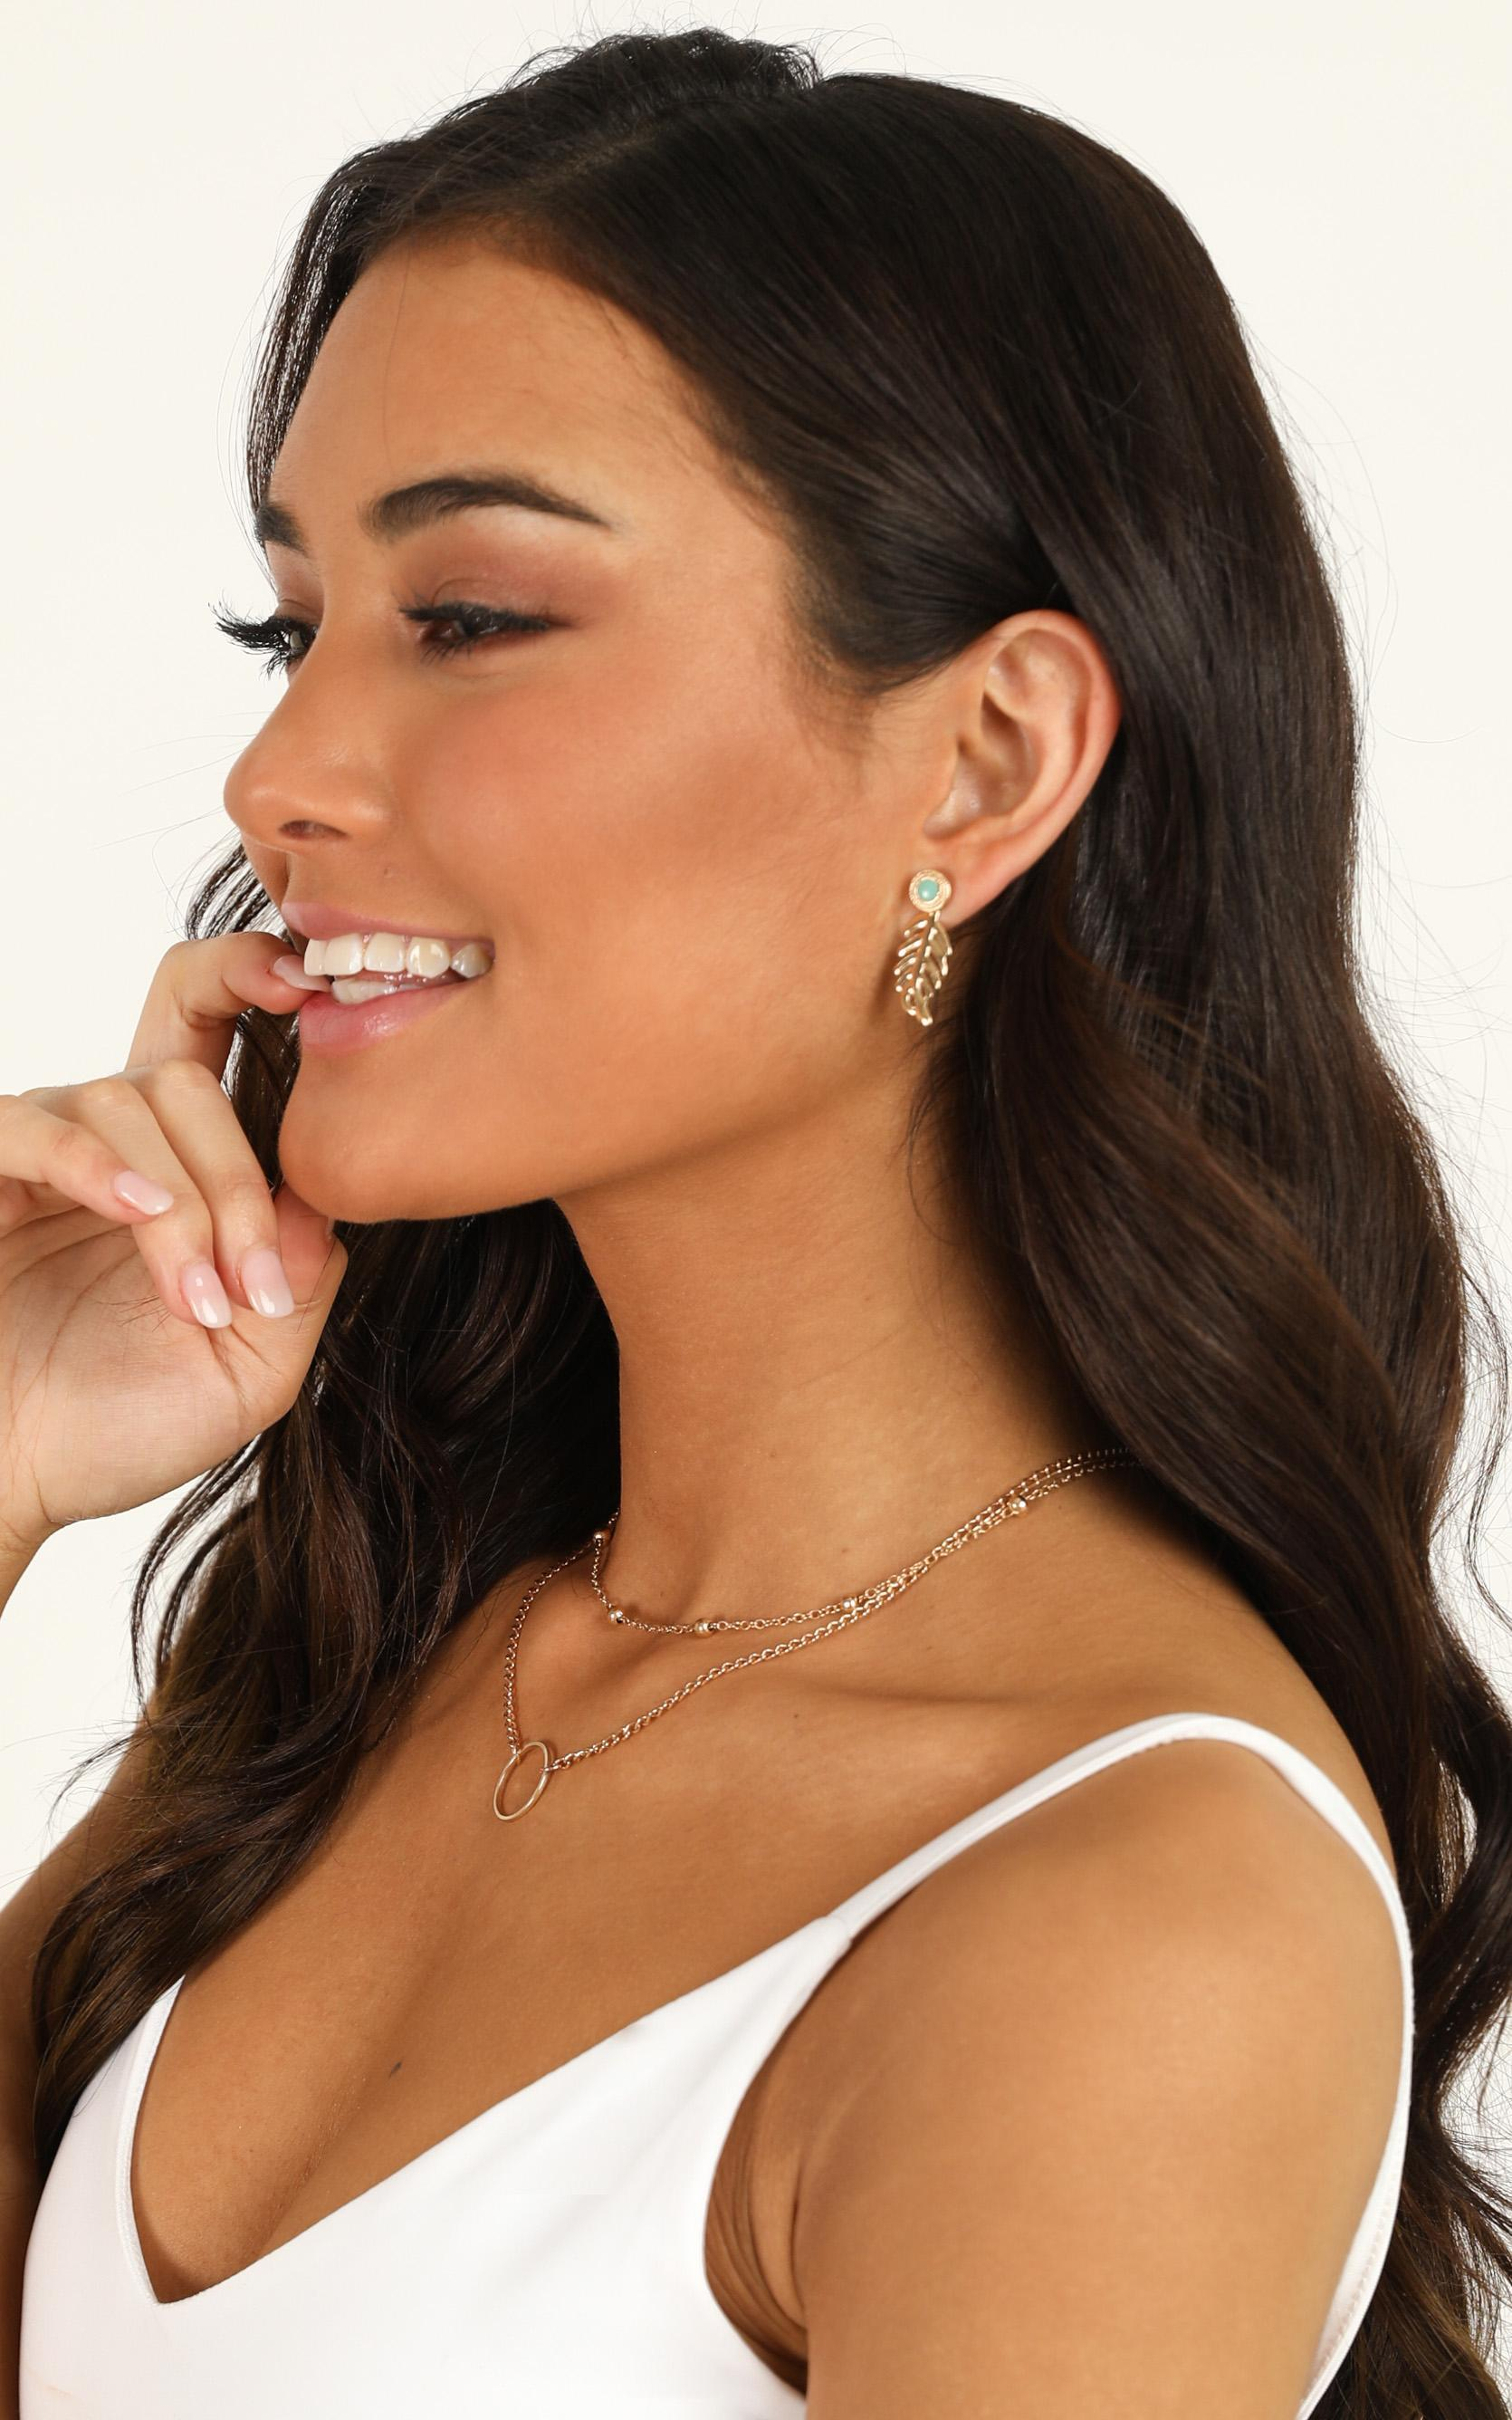 Get To It Earrings 10pc Set In Gold, , hi-res image number null